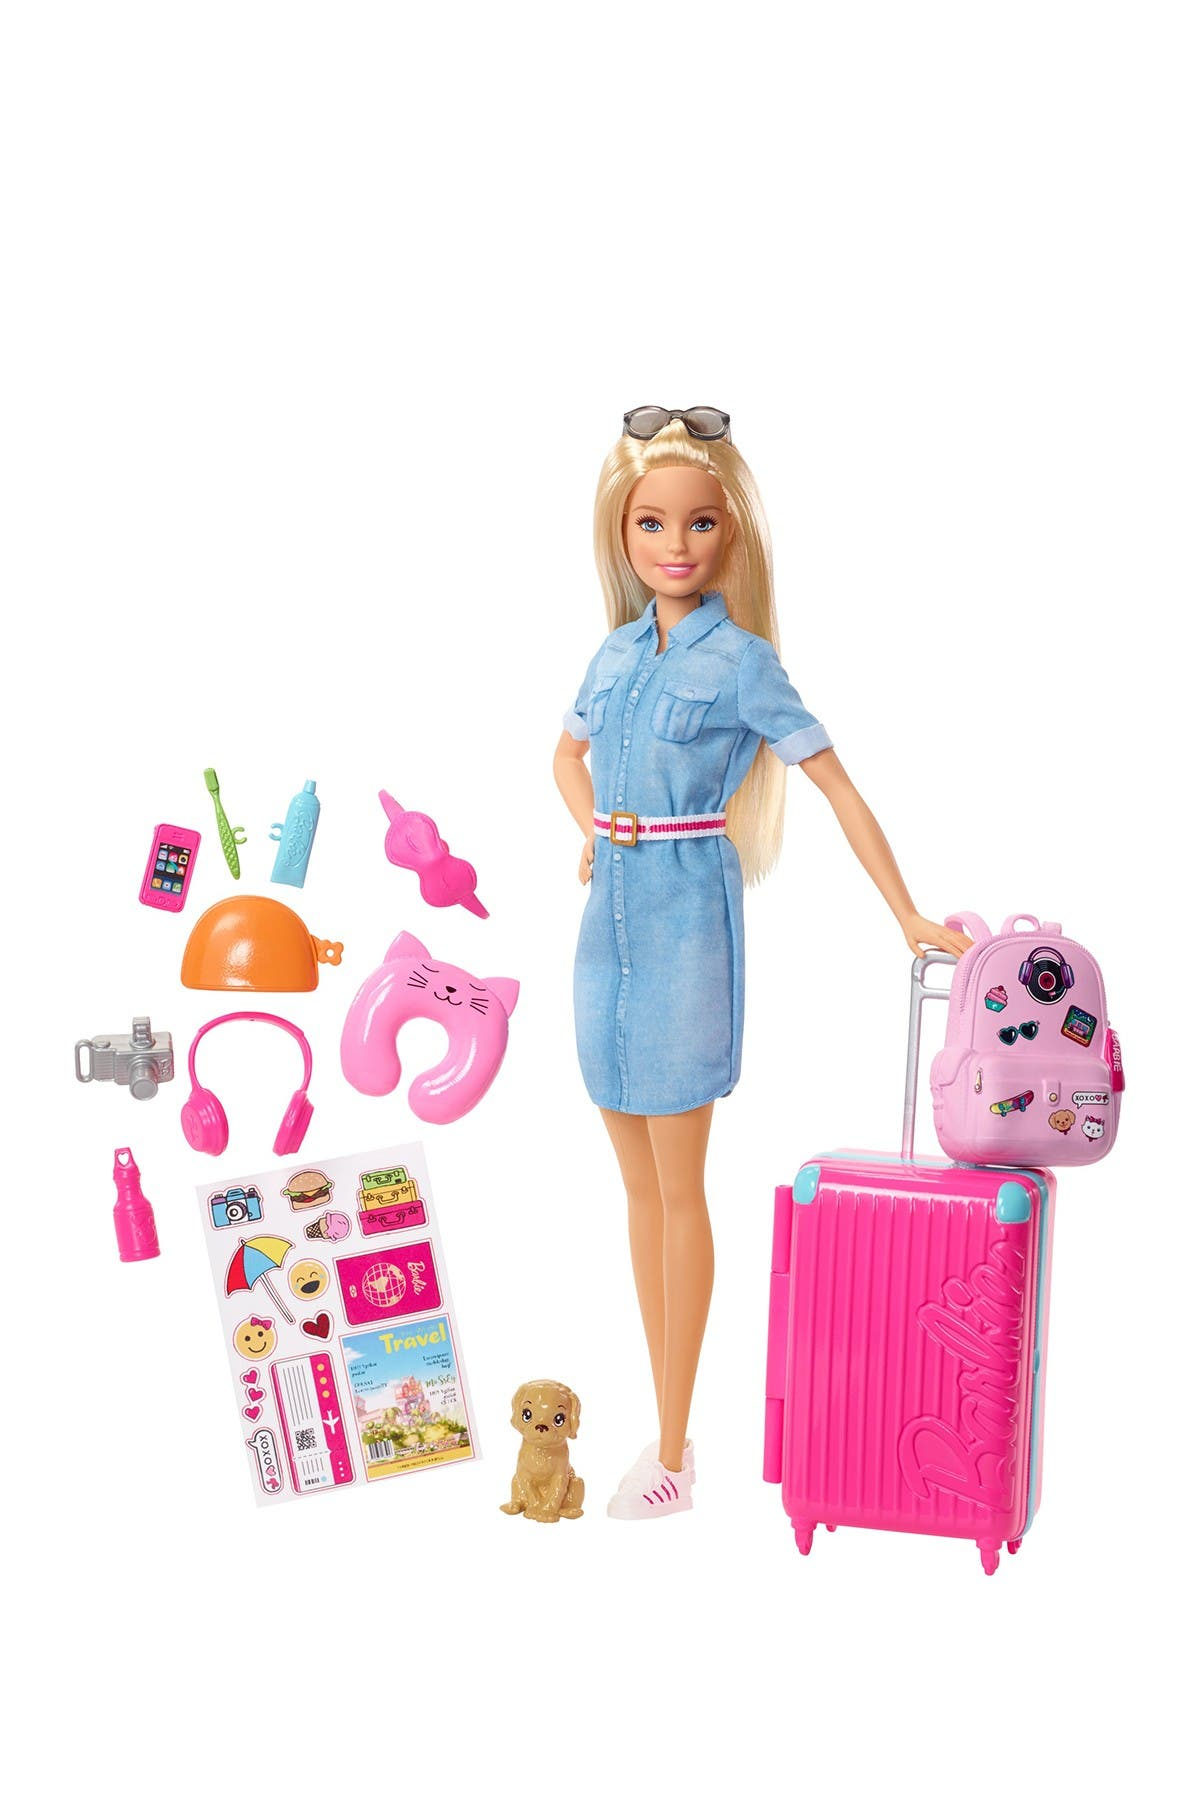 Image of Mattel Barbie(R) Doll & Travel Accessories Set